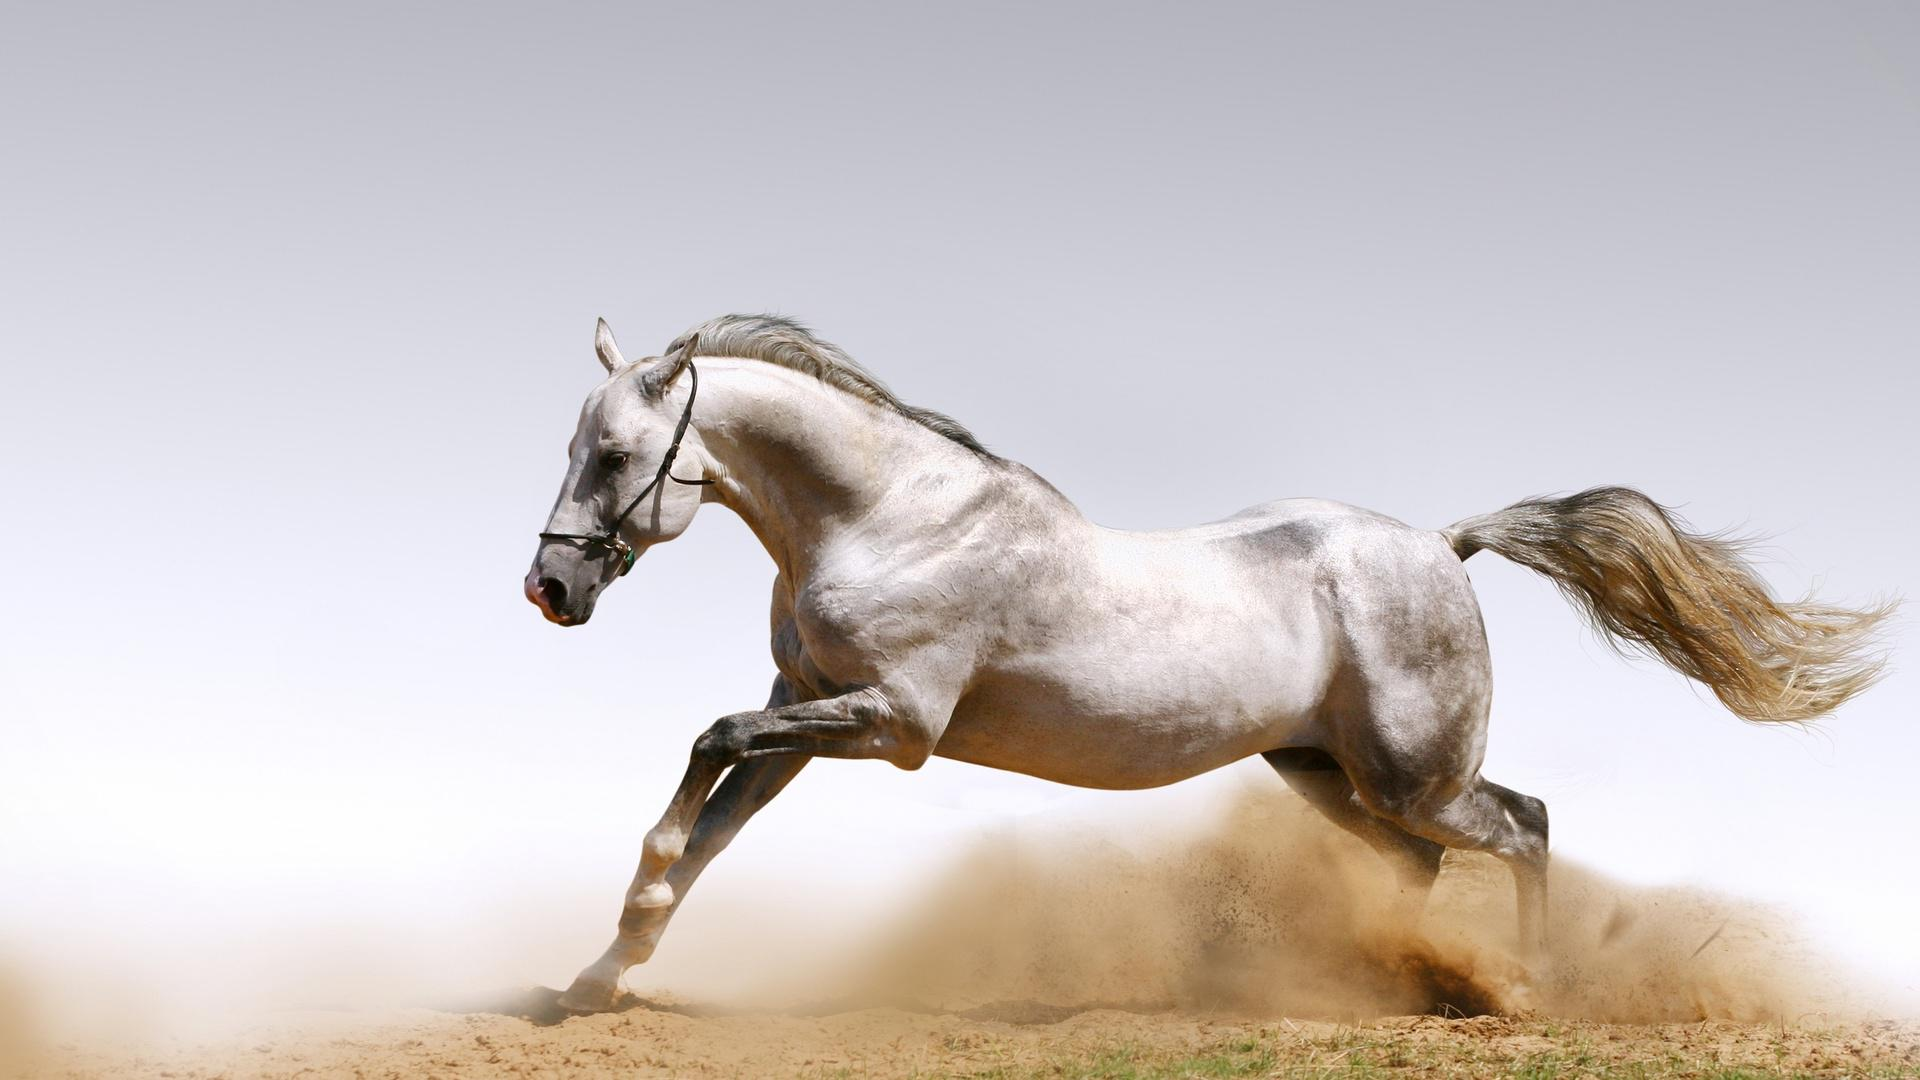 Arabian Horse from England HQ Wallpaper